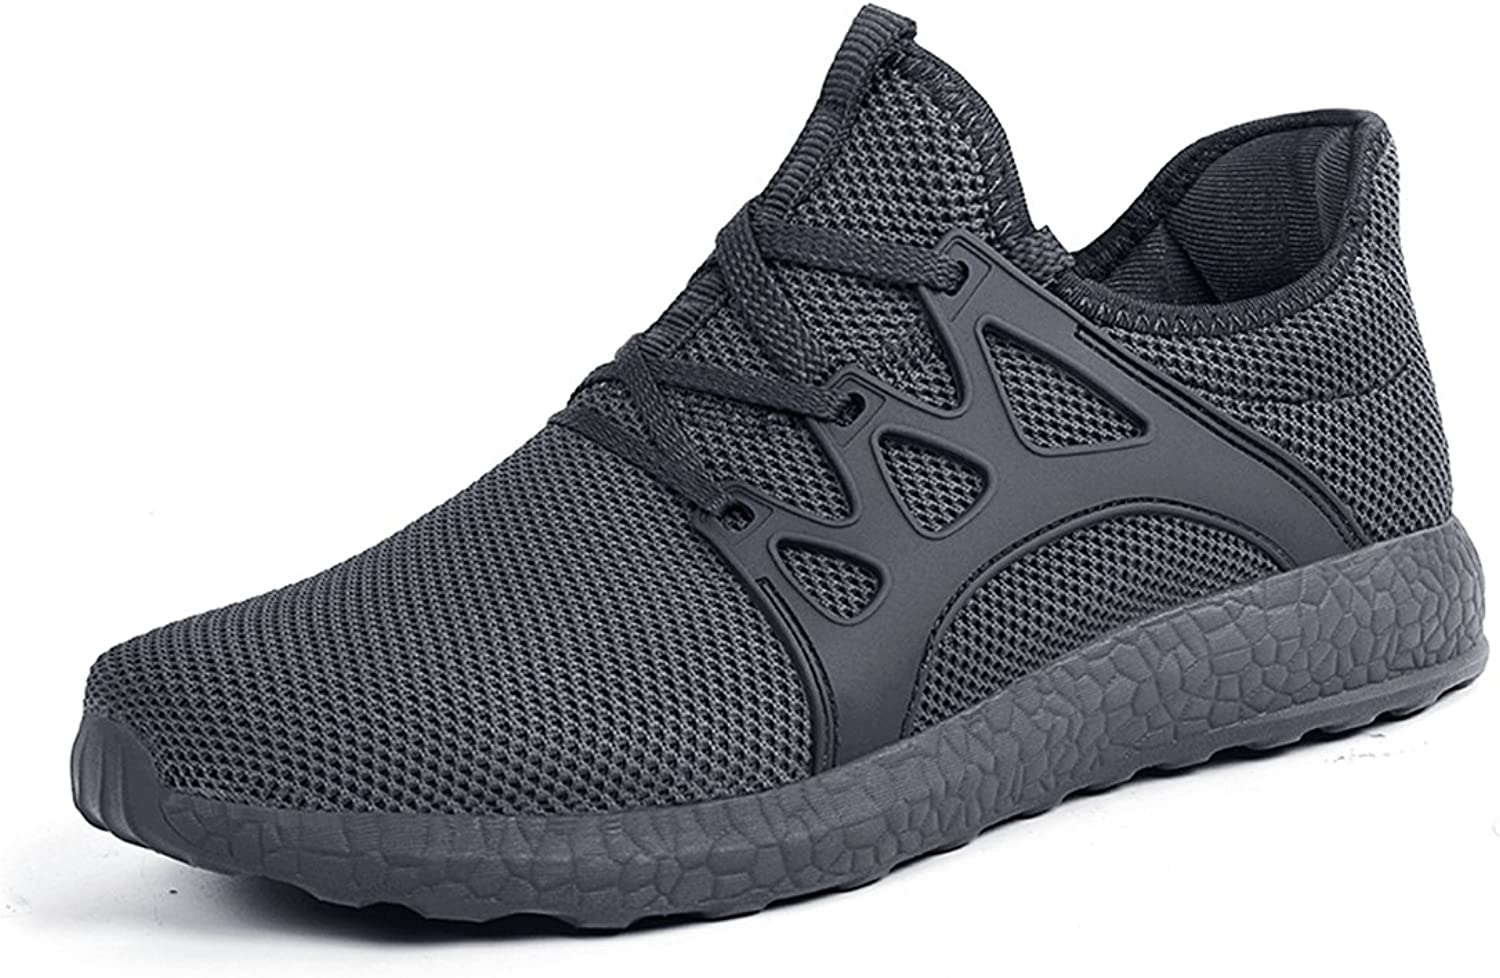 ZOCAVIA Men's Casual Sneakers Ultra Lightweight Breathable Mesh Sport Walking Running shoes, Dark Grey, 12.5 D(M) US